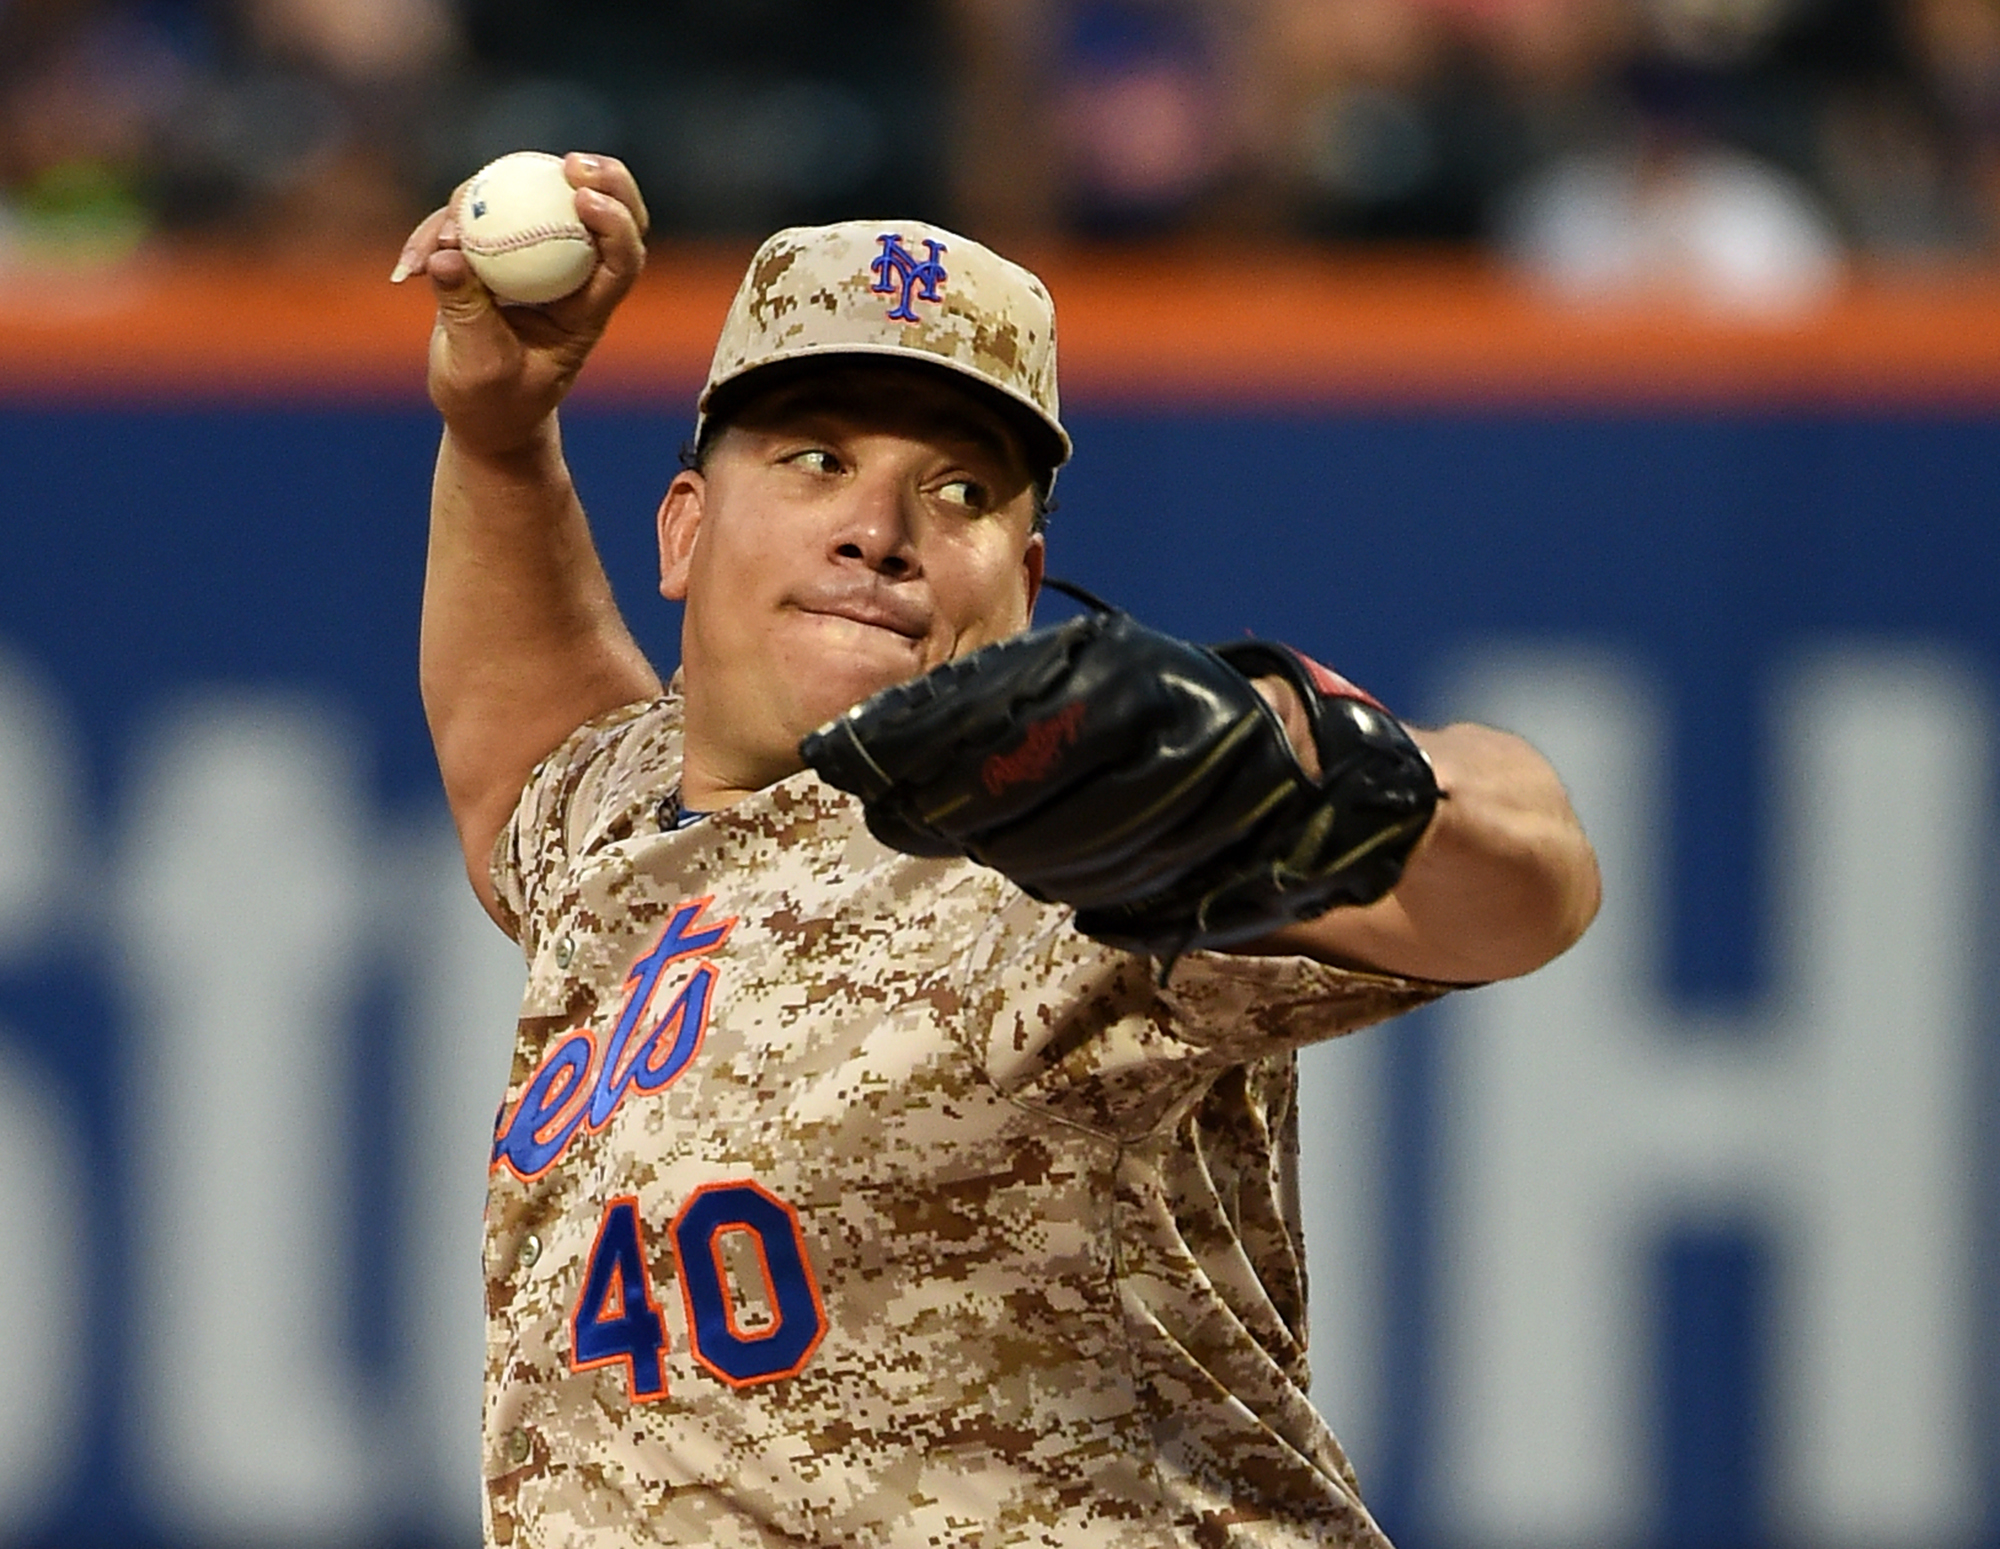 New York Mets starter Bartolo Colon pitches against the Philadelphia Phillies in the first inning of a baseball game at Citi Field on Monday, Aug. 31, 2015, in New York. (AP Photo/Kathy Kmonicek)